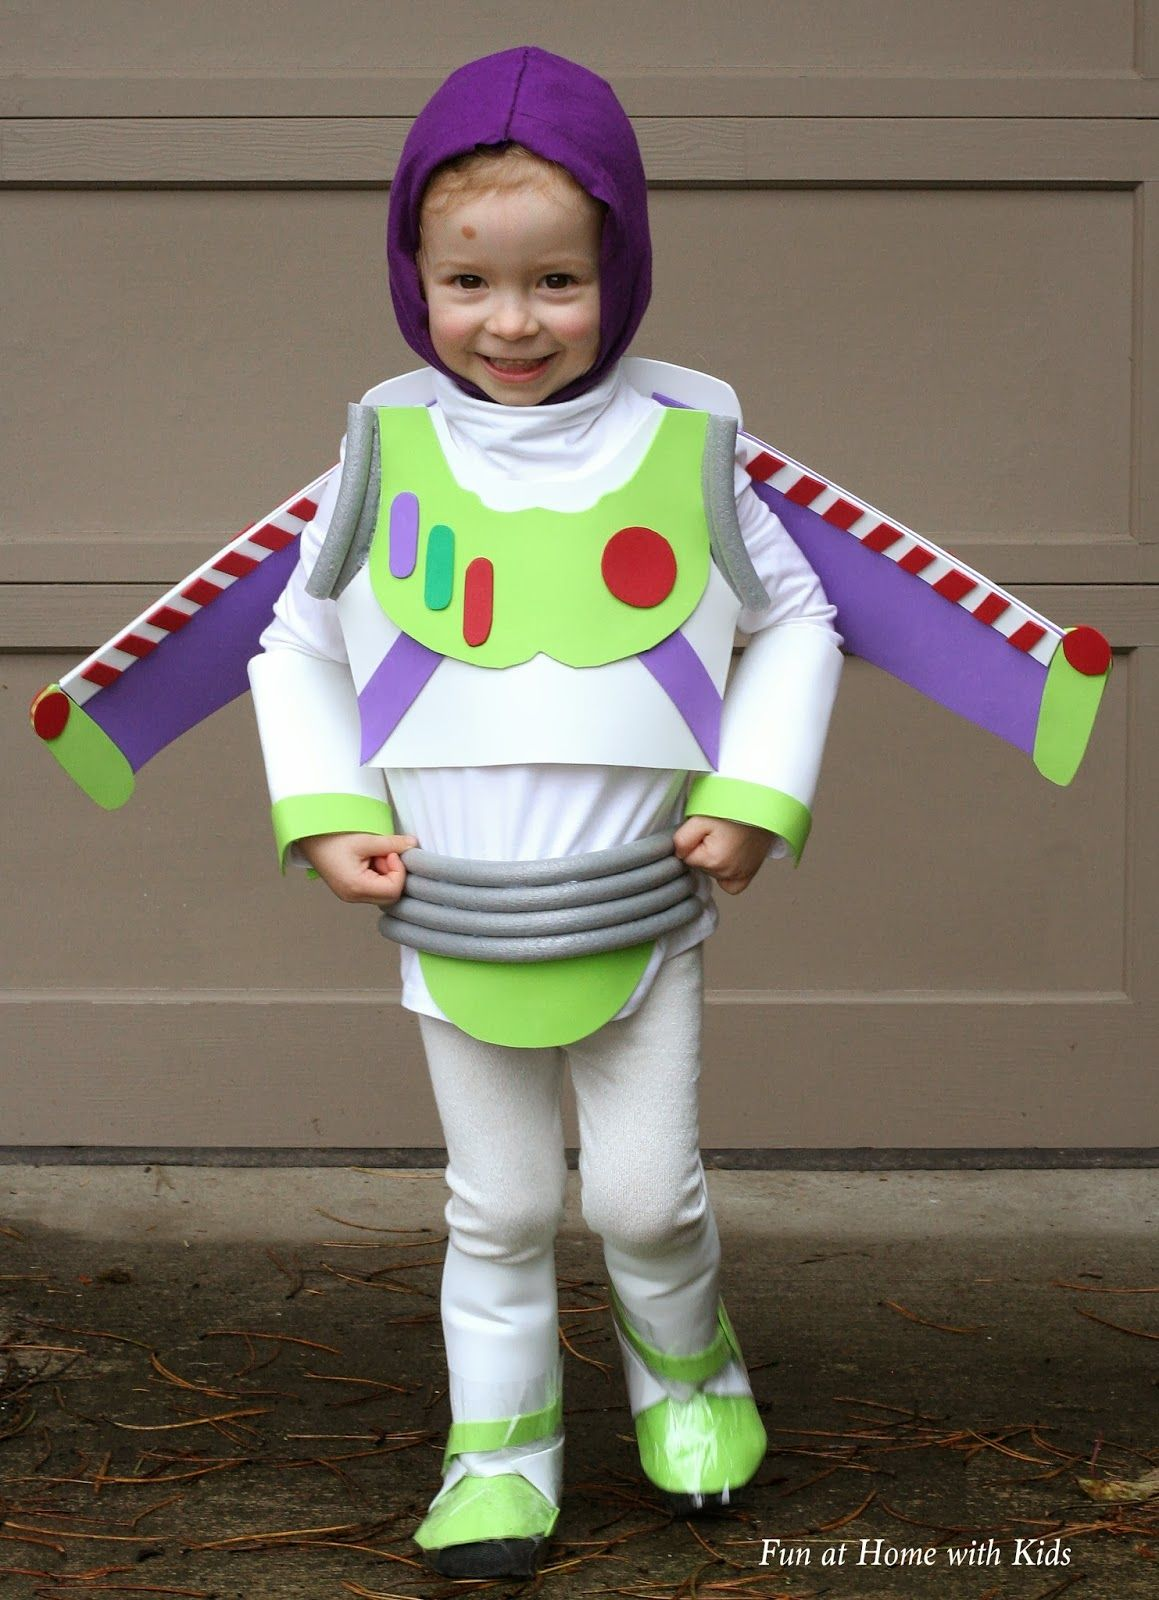 DIY Kids Buzz Lightyear No Sew Halloween Costume from Fun at Home with Kids  sc 1 st  Pinterest & DIY Kids Buzz Lightyear No Sew Halloween Costume | Homemade Toys and ...